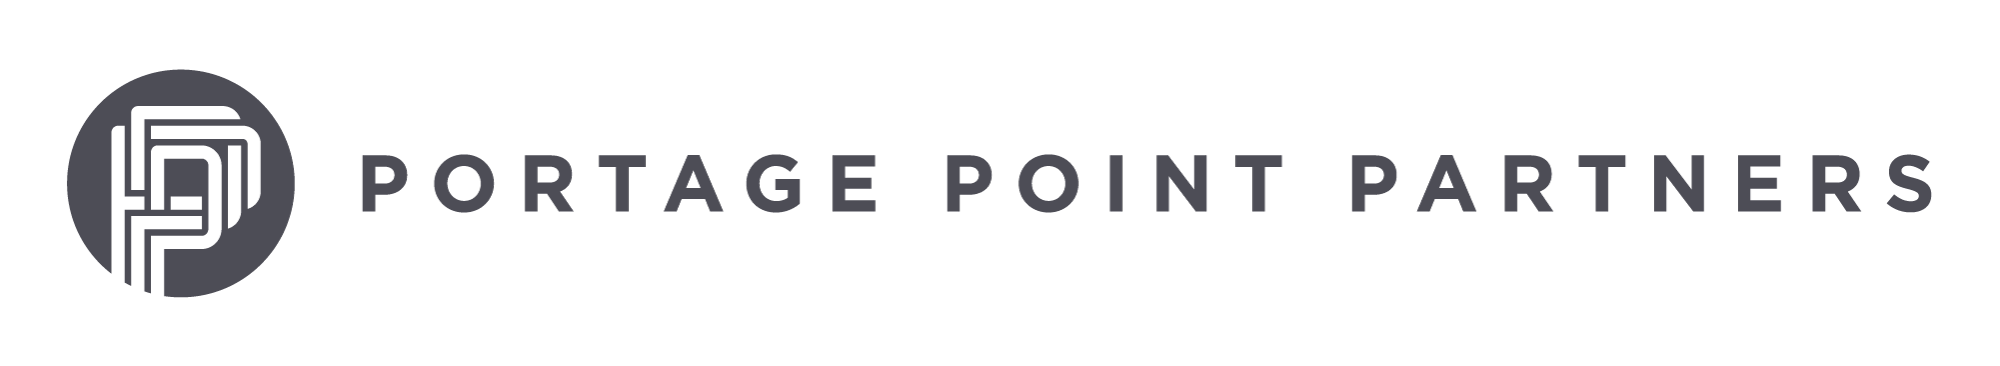 Portage Point Partners logo